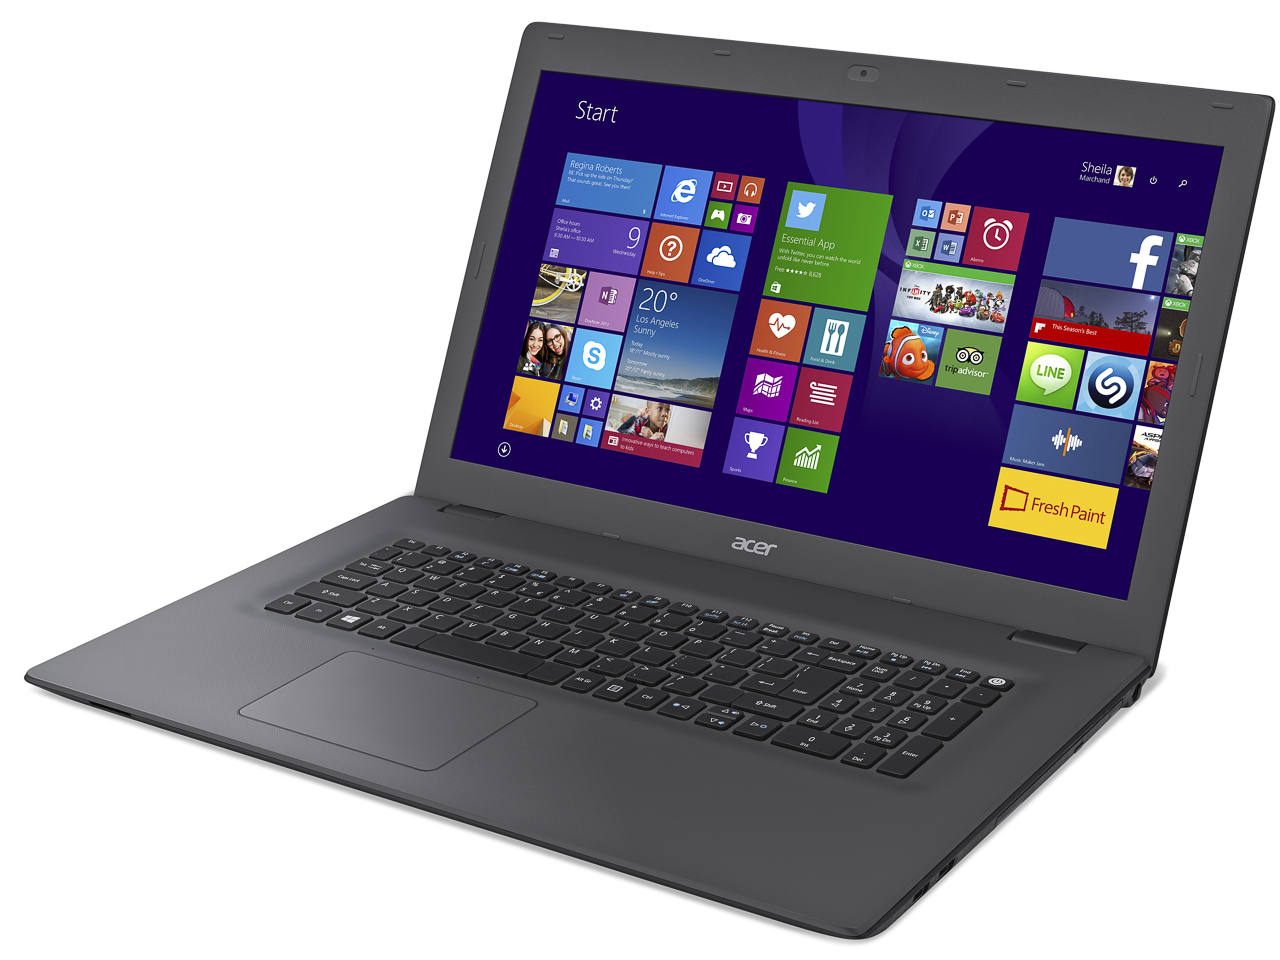 ACER ASPIRE E5-772 NVIDIA GRAPHICS DRIVER DOWNLOAD FREE